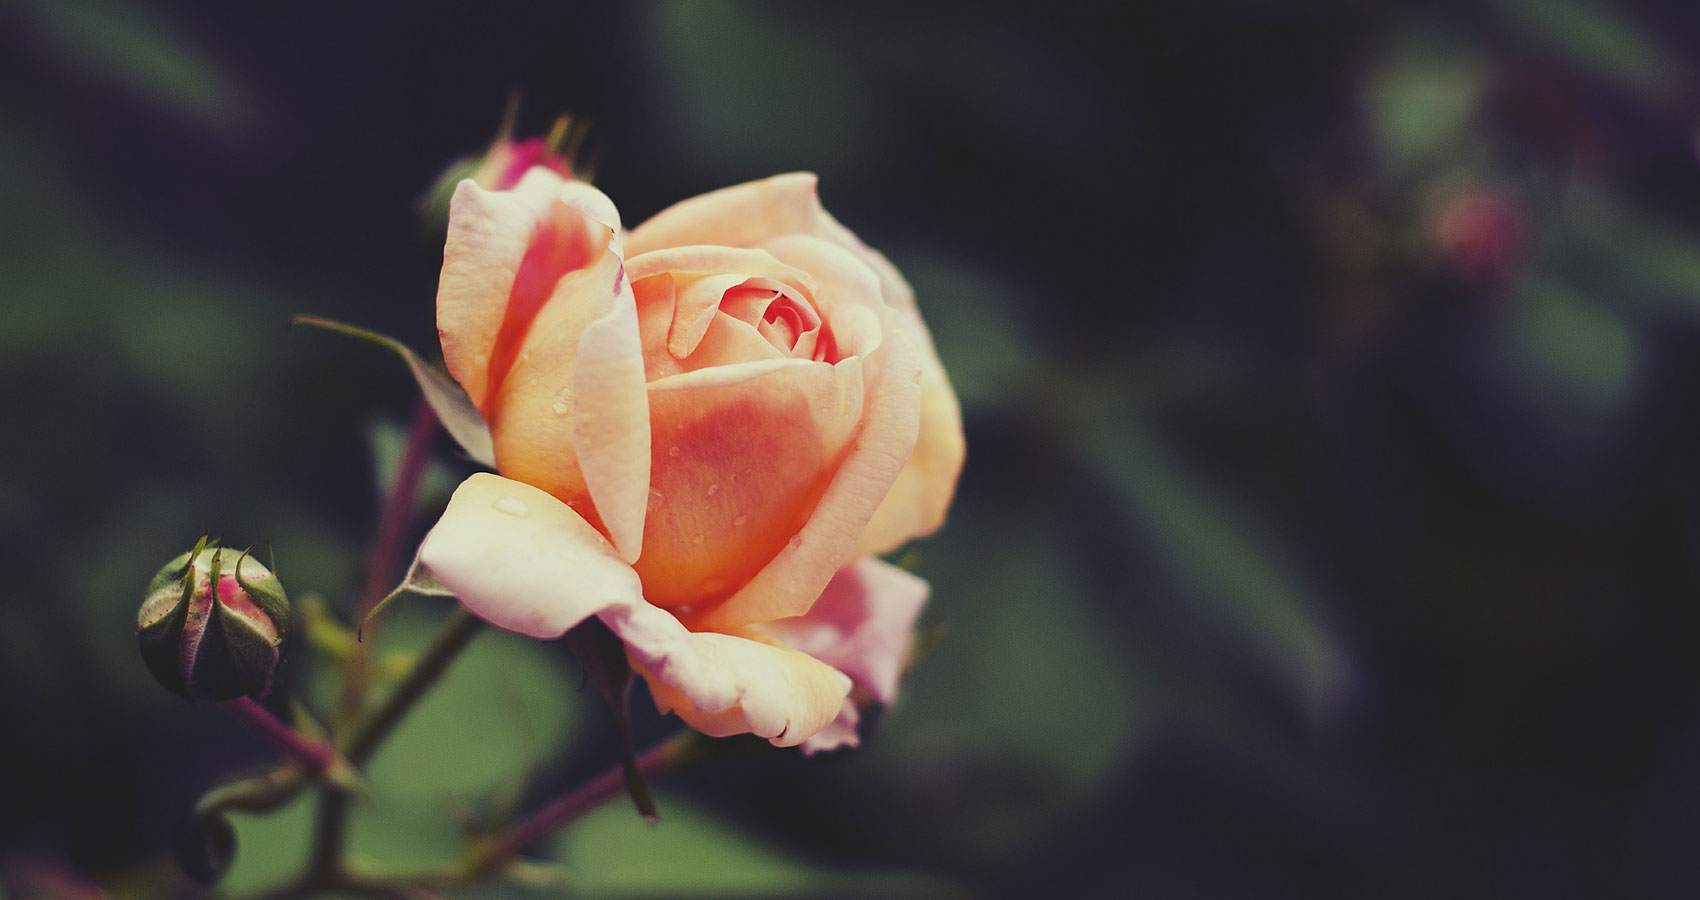 A Rose, a poem written by Magdalena Podobińska at Spillwords.com